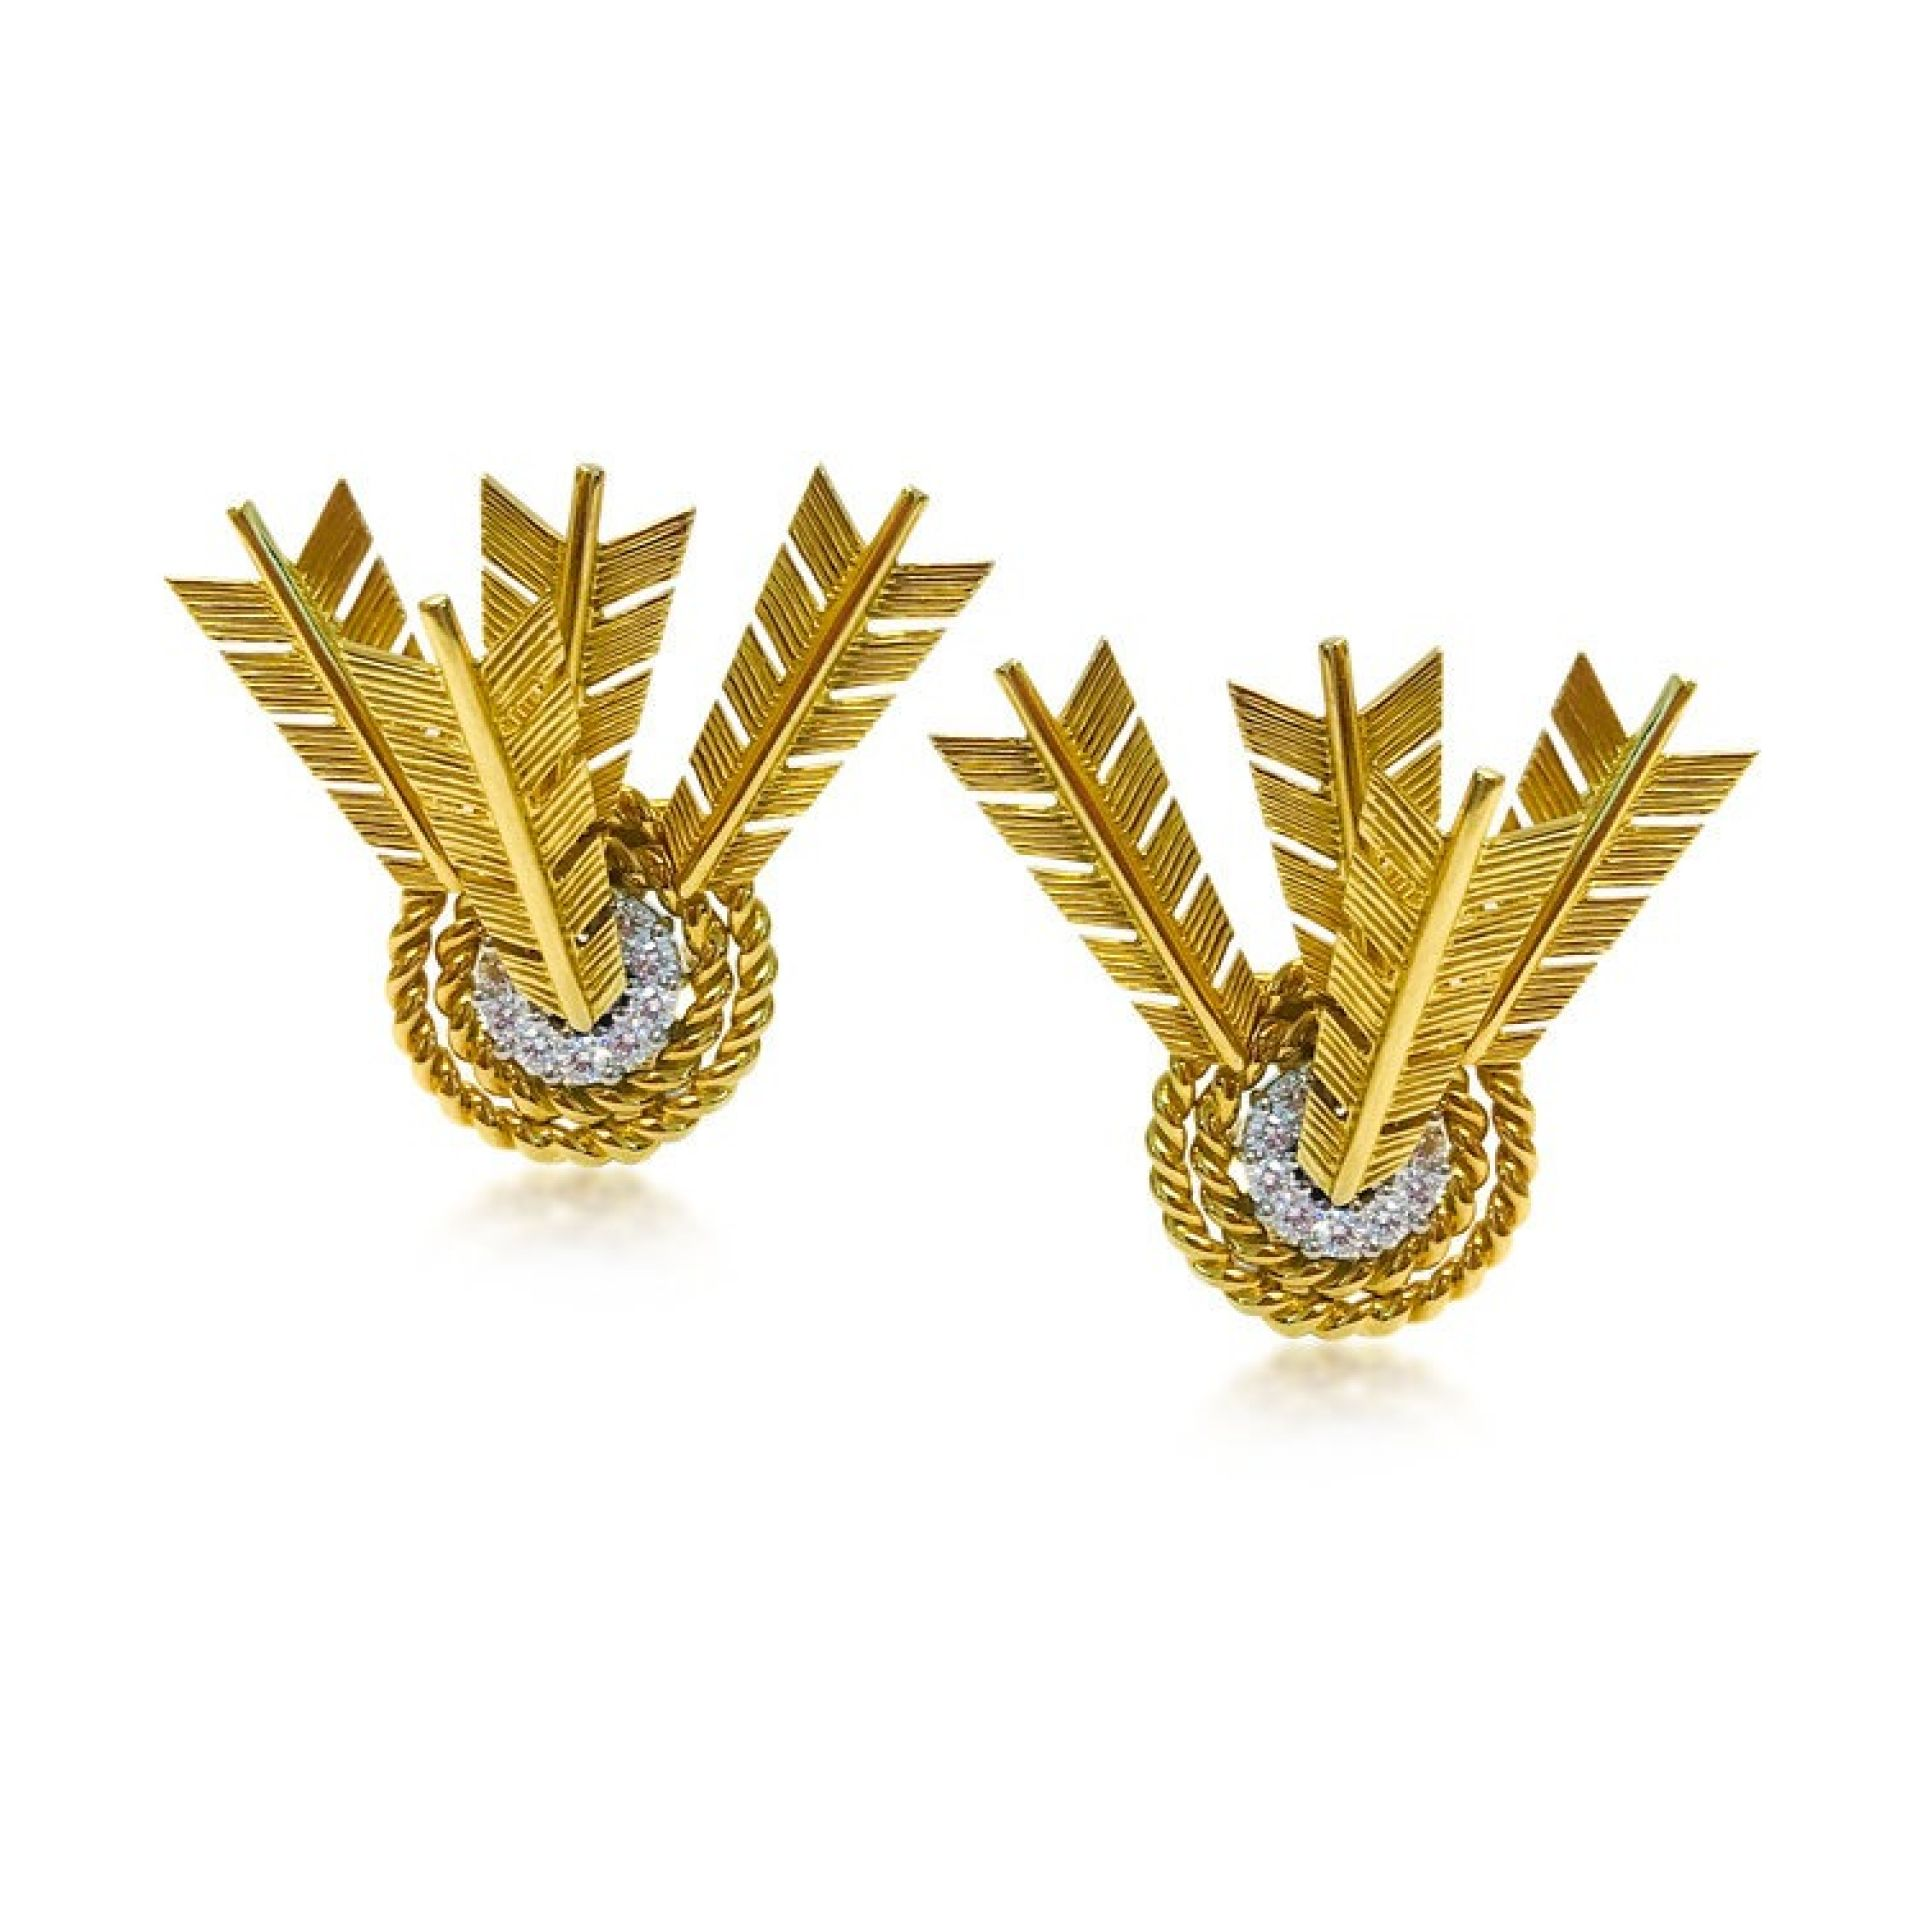 A PAIR OF GOLD AND DIAMOND TARGET ARROW EARRINGS